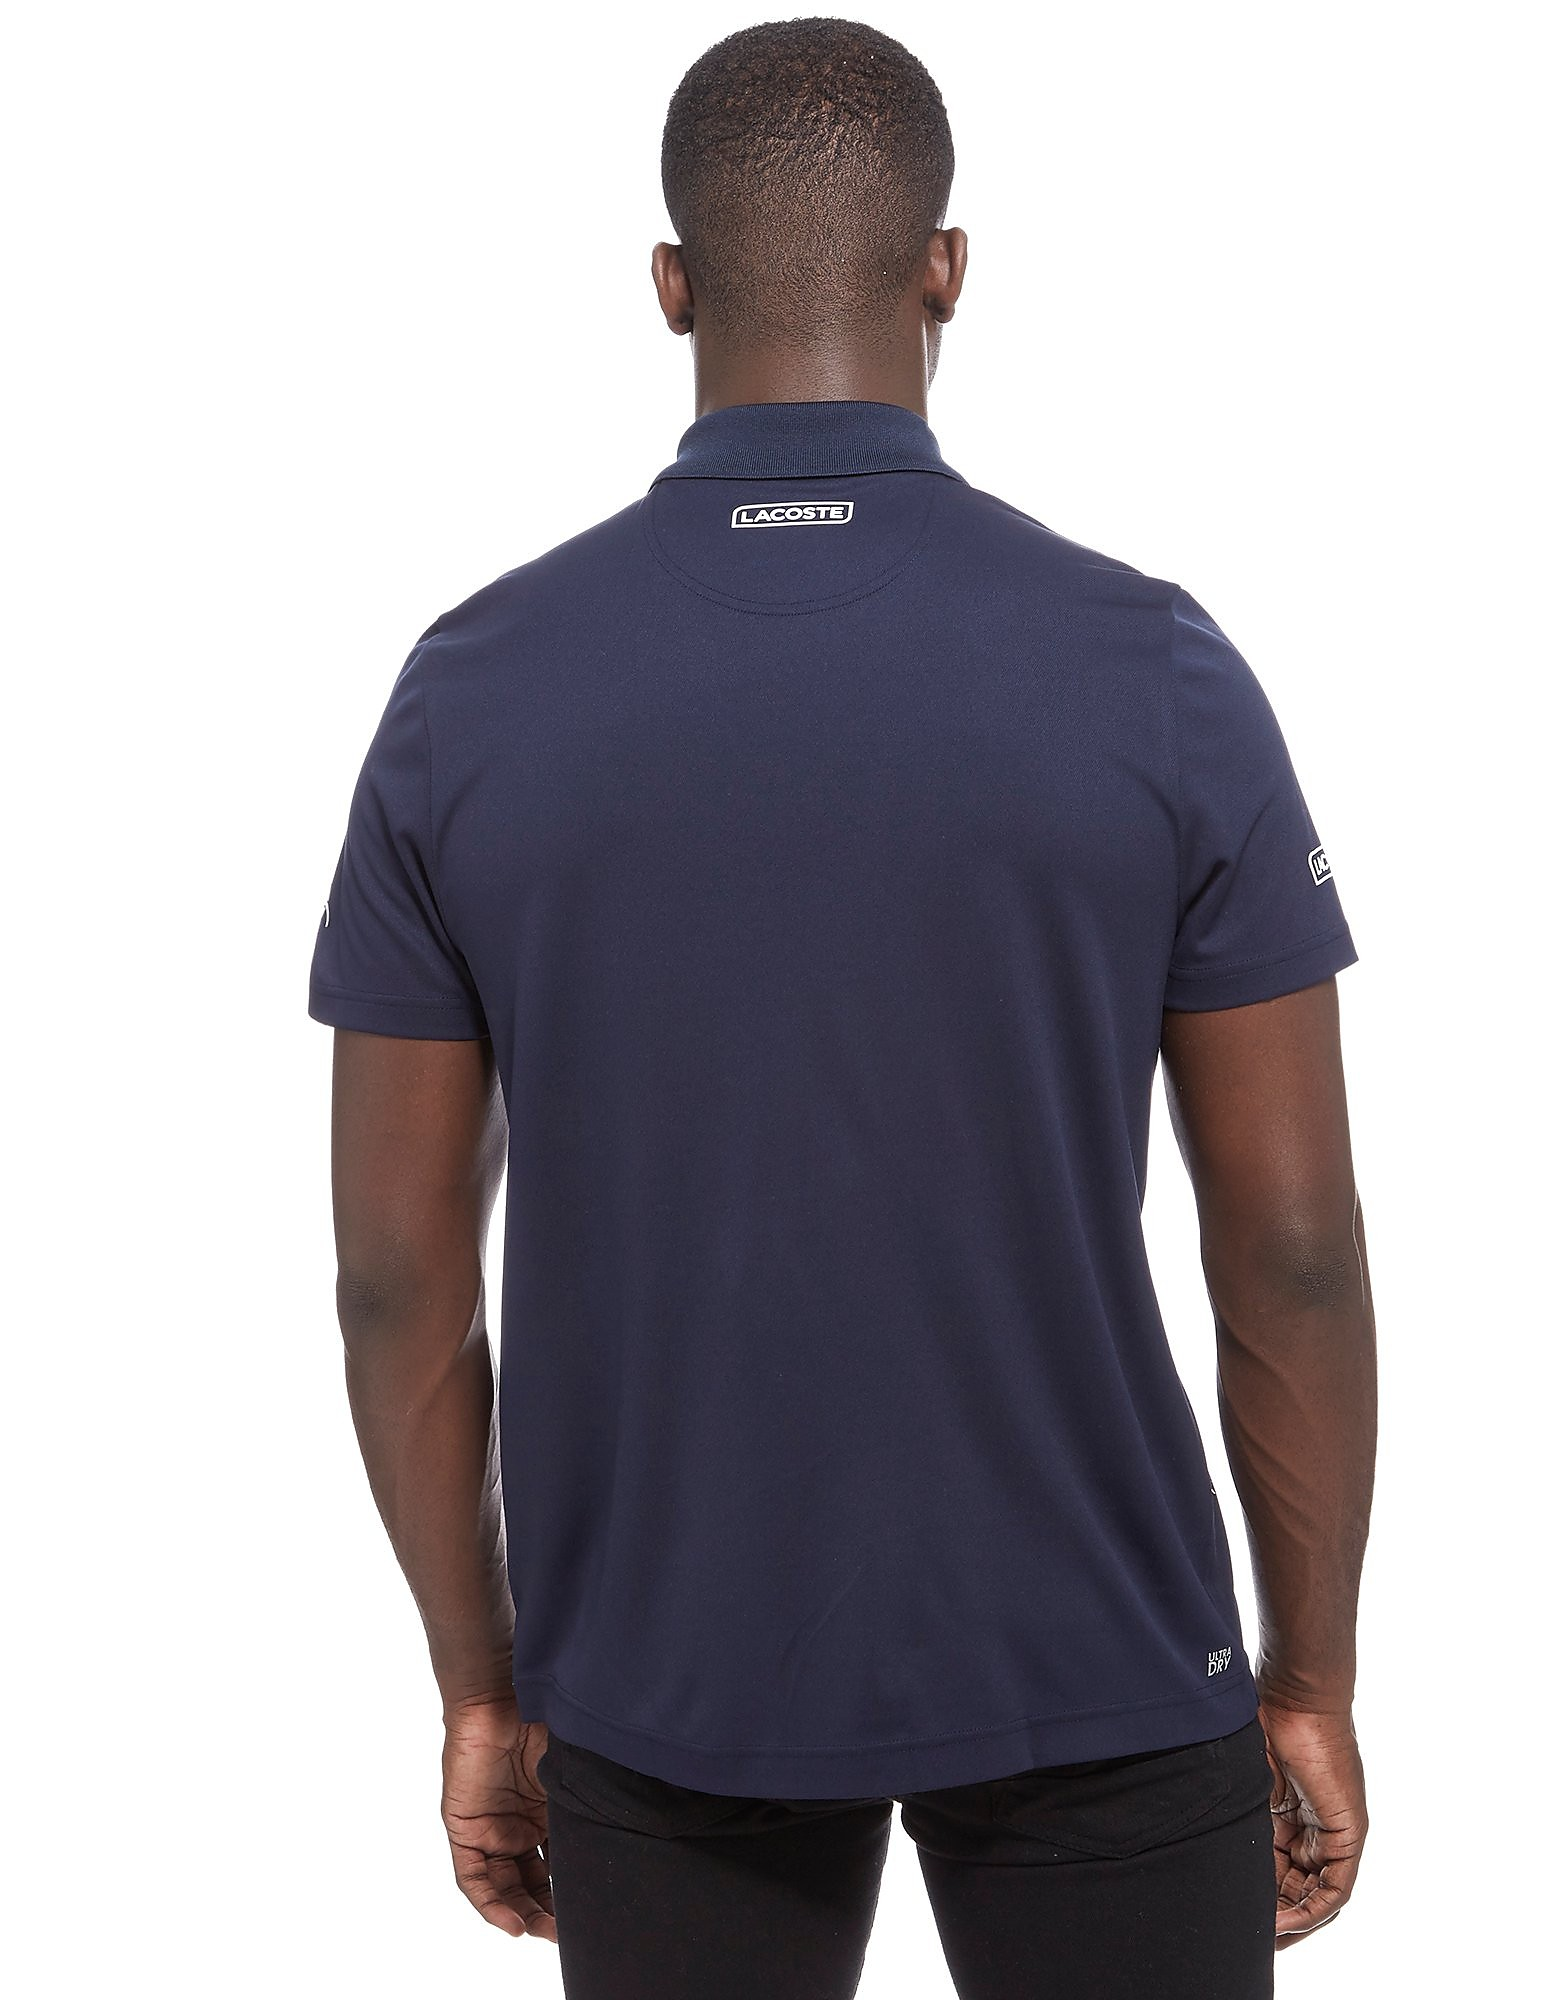 Lacoste Novak Djokovic Collection Polo Heren